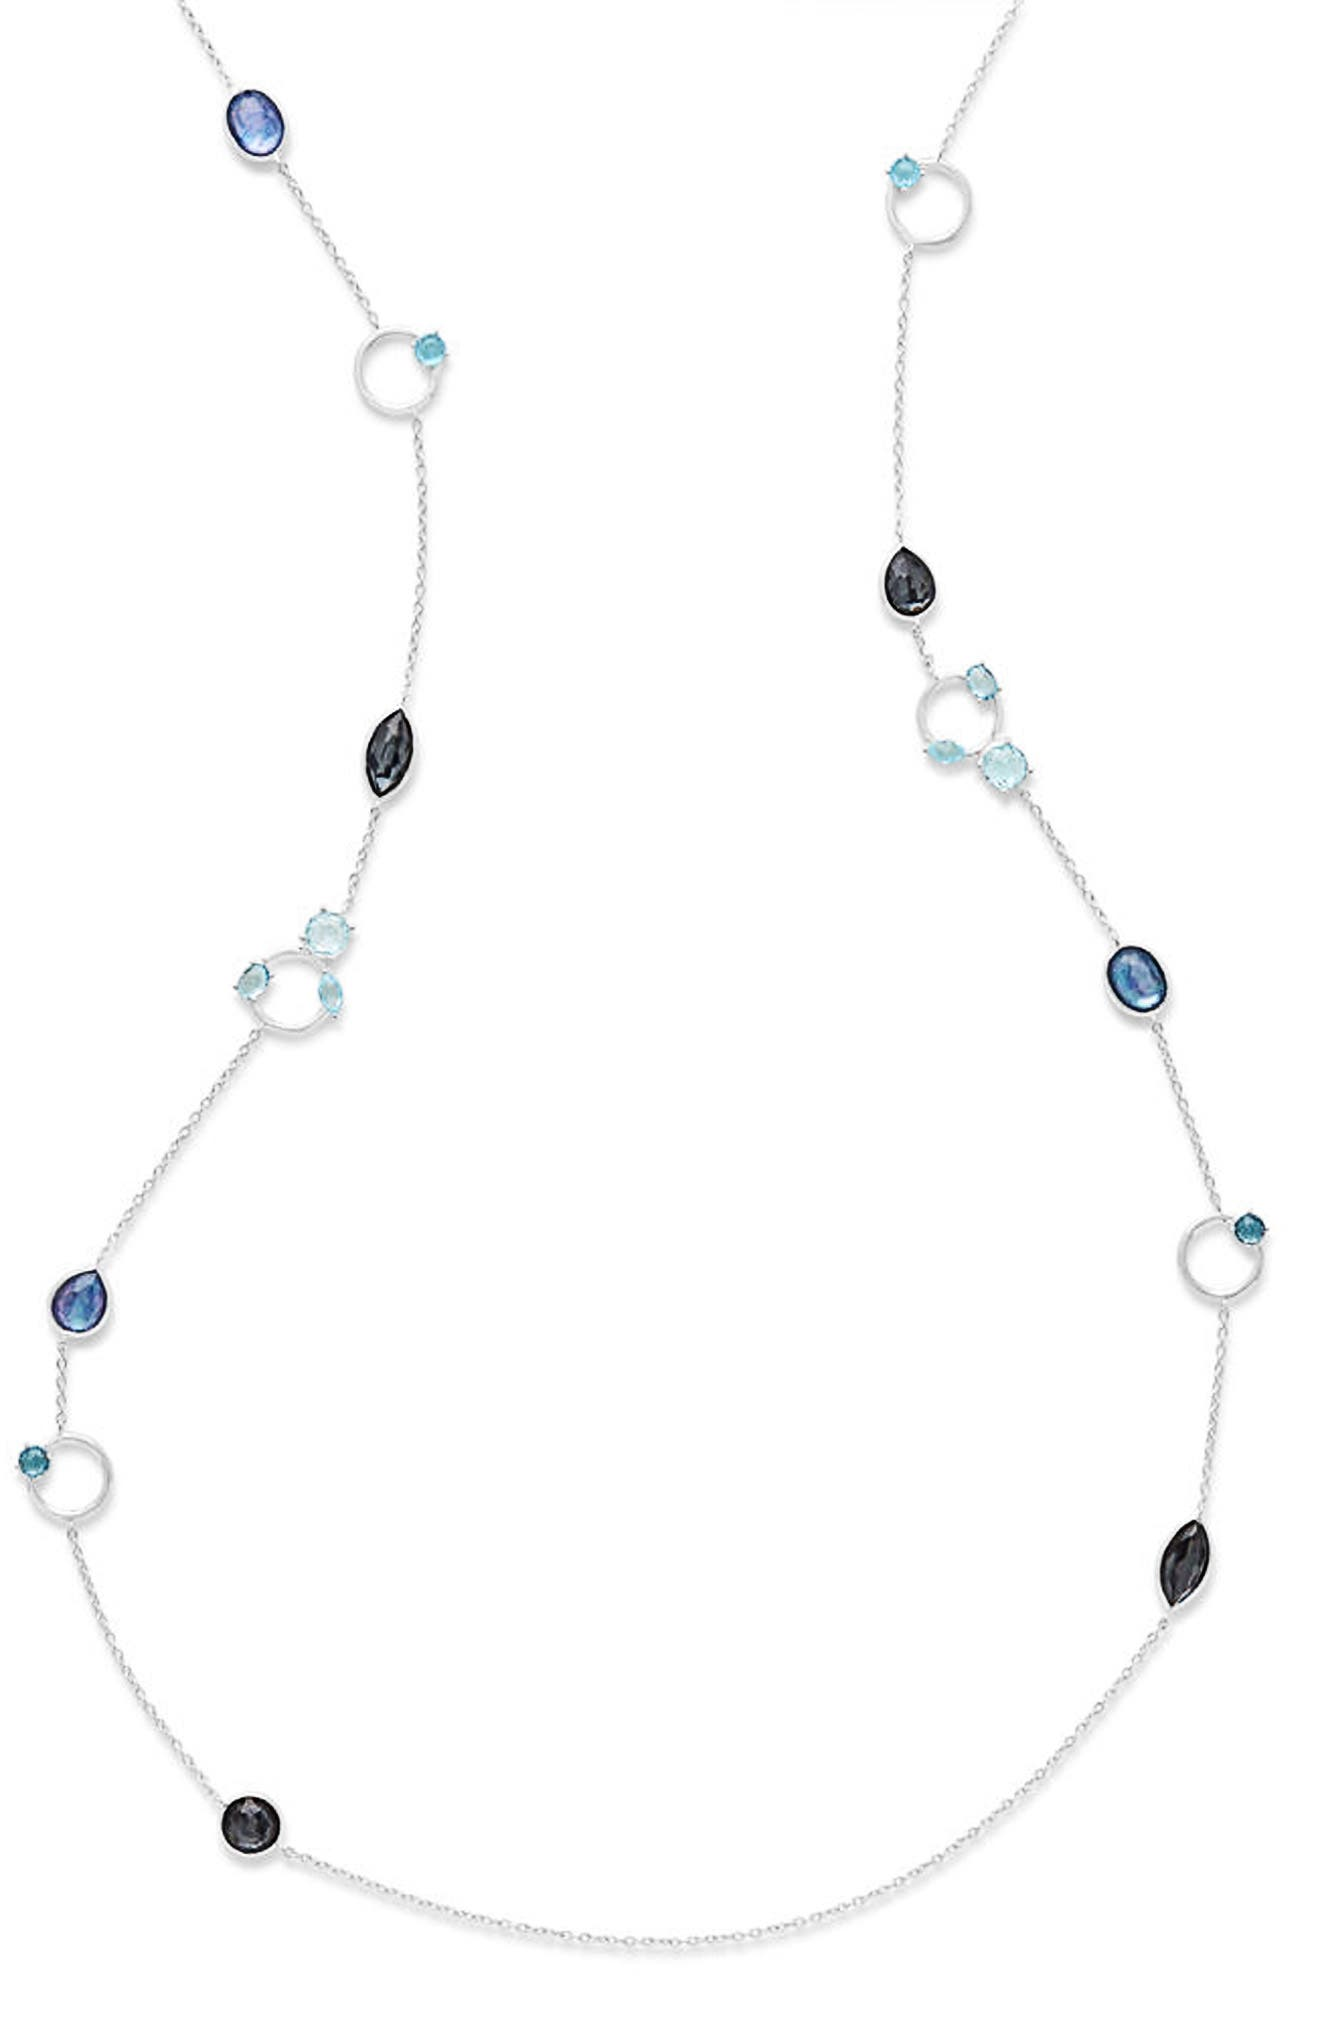 Rock Candy Strand Necklace,                             Alternate thumbnail 3, color,                             400